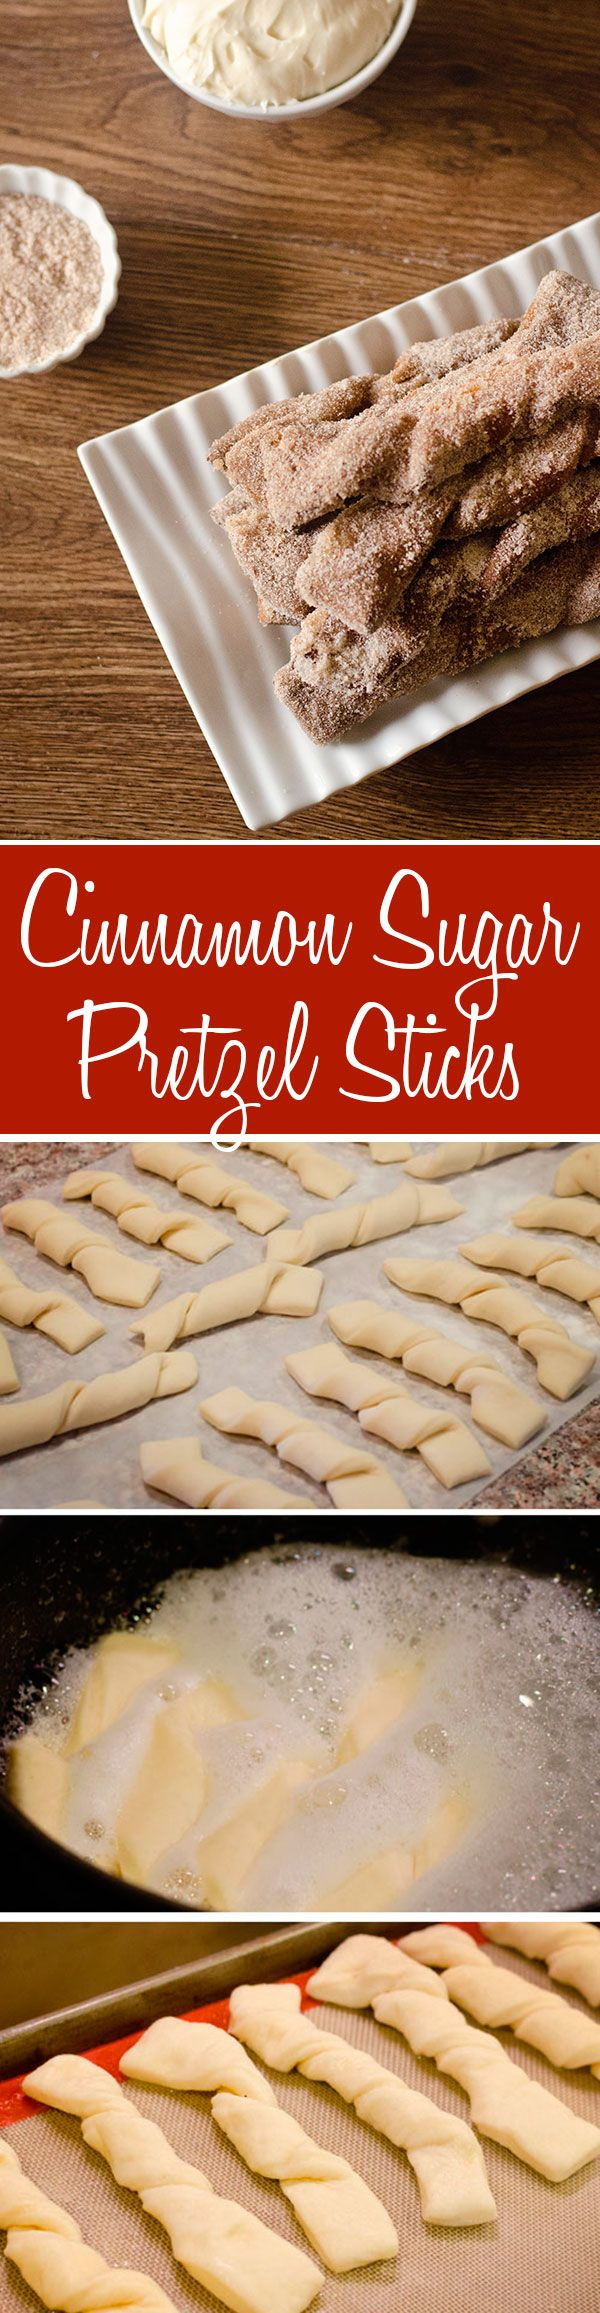 making soft pretzel sticks are easy and delicious, especially covered with cinnamon and sugar and dipped in cream cheese frosting